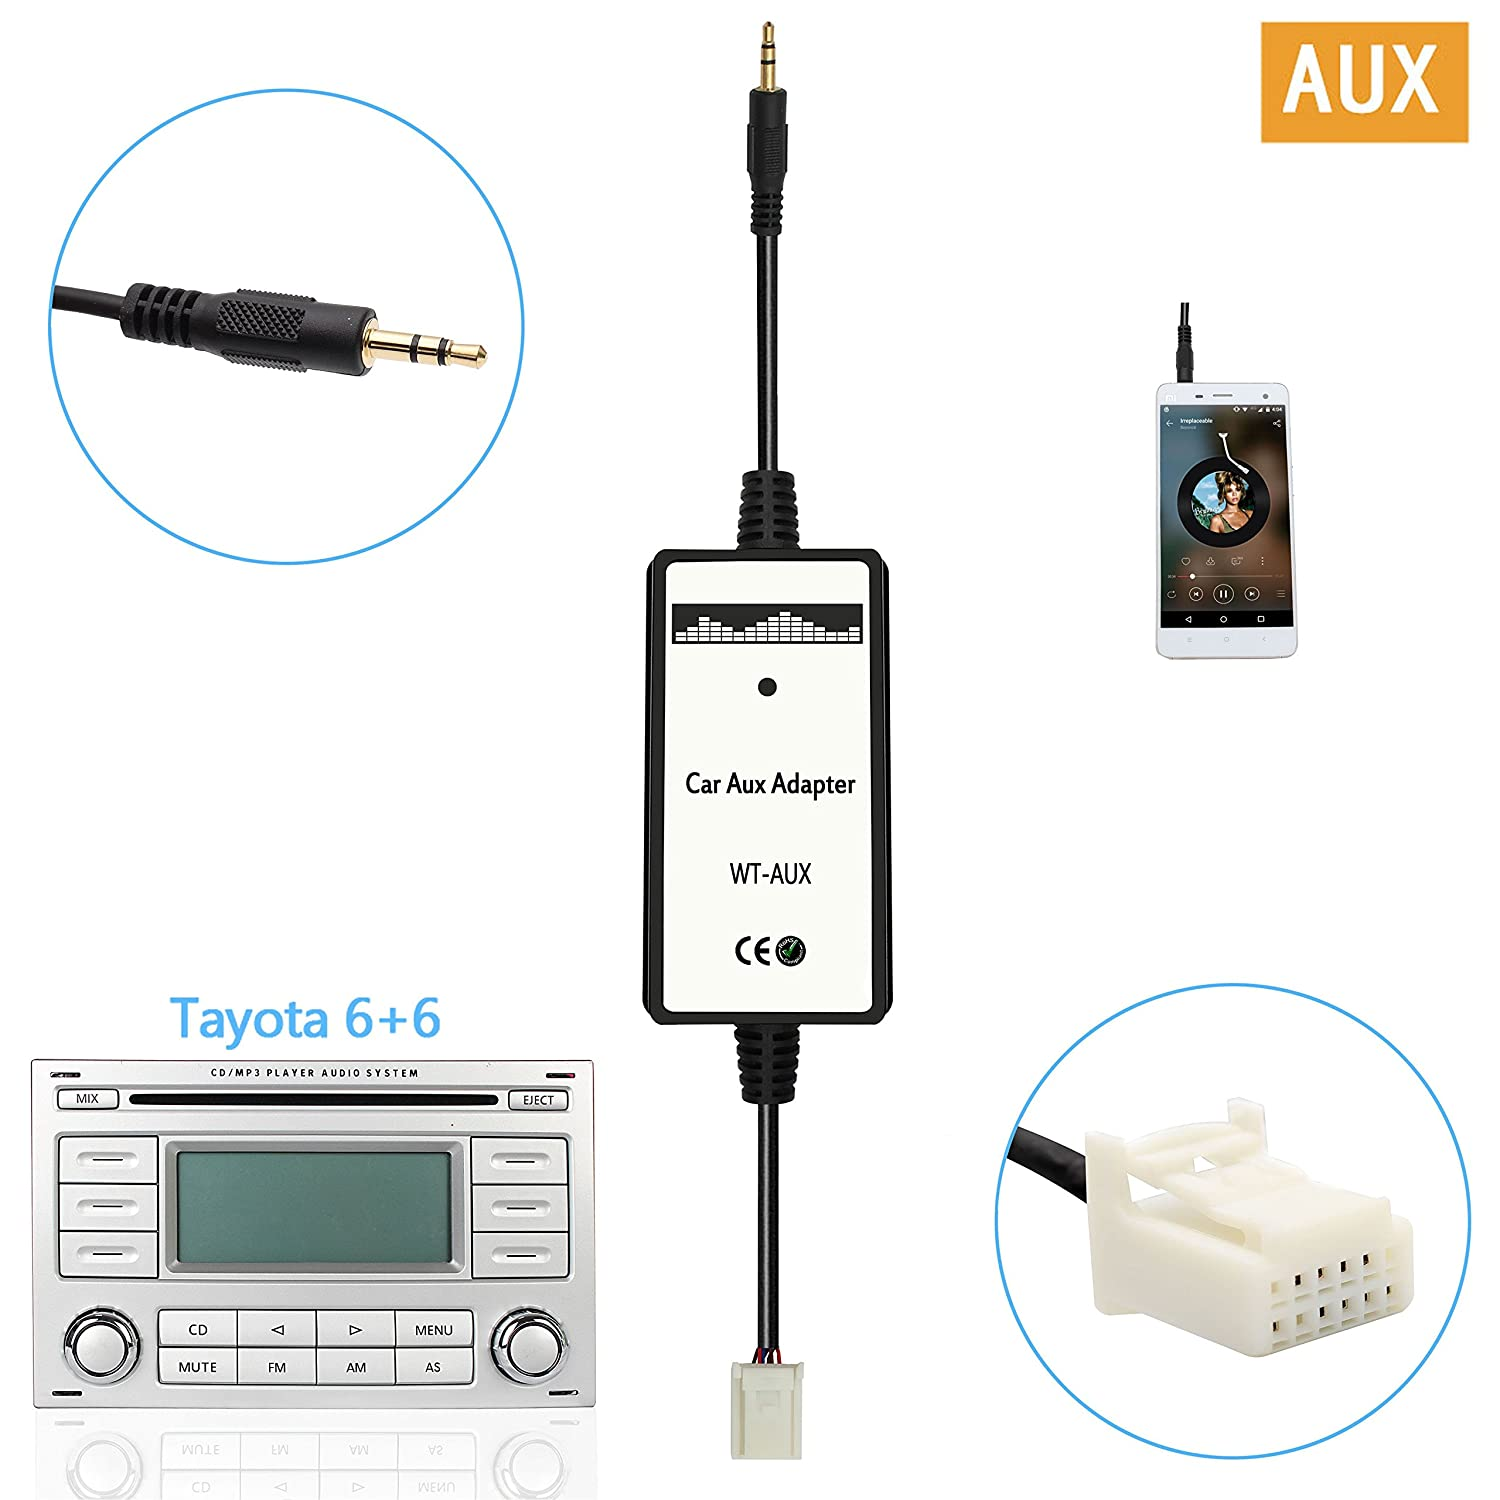 Moonet 3.5mm Audio Input Auxillary Aux Adapter Stereo Radio For 2003-UP Toyota 4Runner Avalon Camry Celica Corolla Yaris FJ Cruiser Highlander Landcruiser Matrix MR2 Tacoma Tundra Venza Vitz